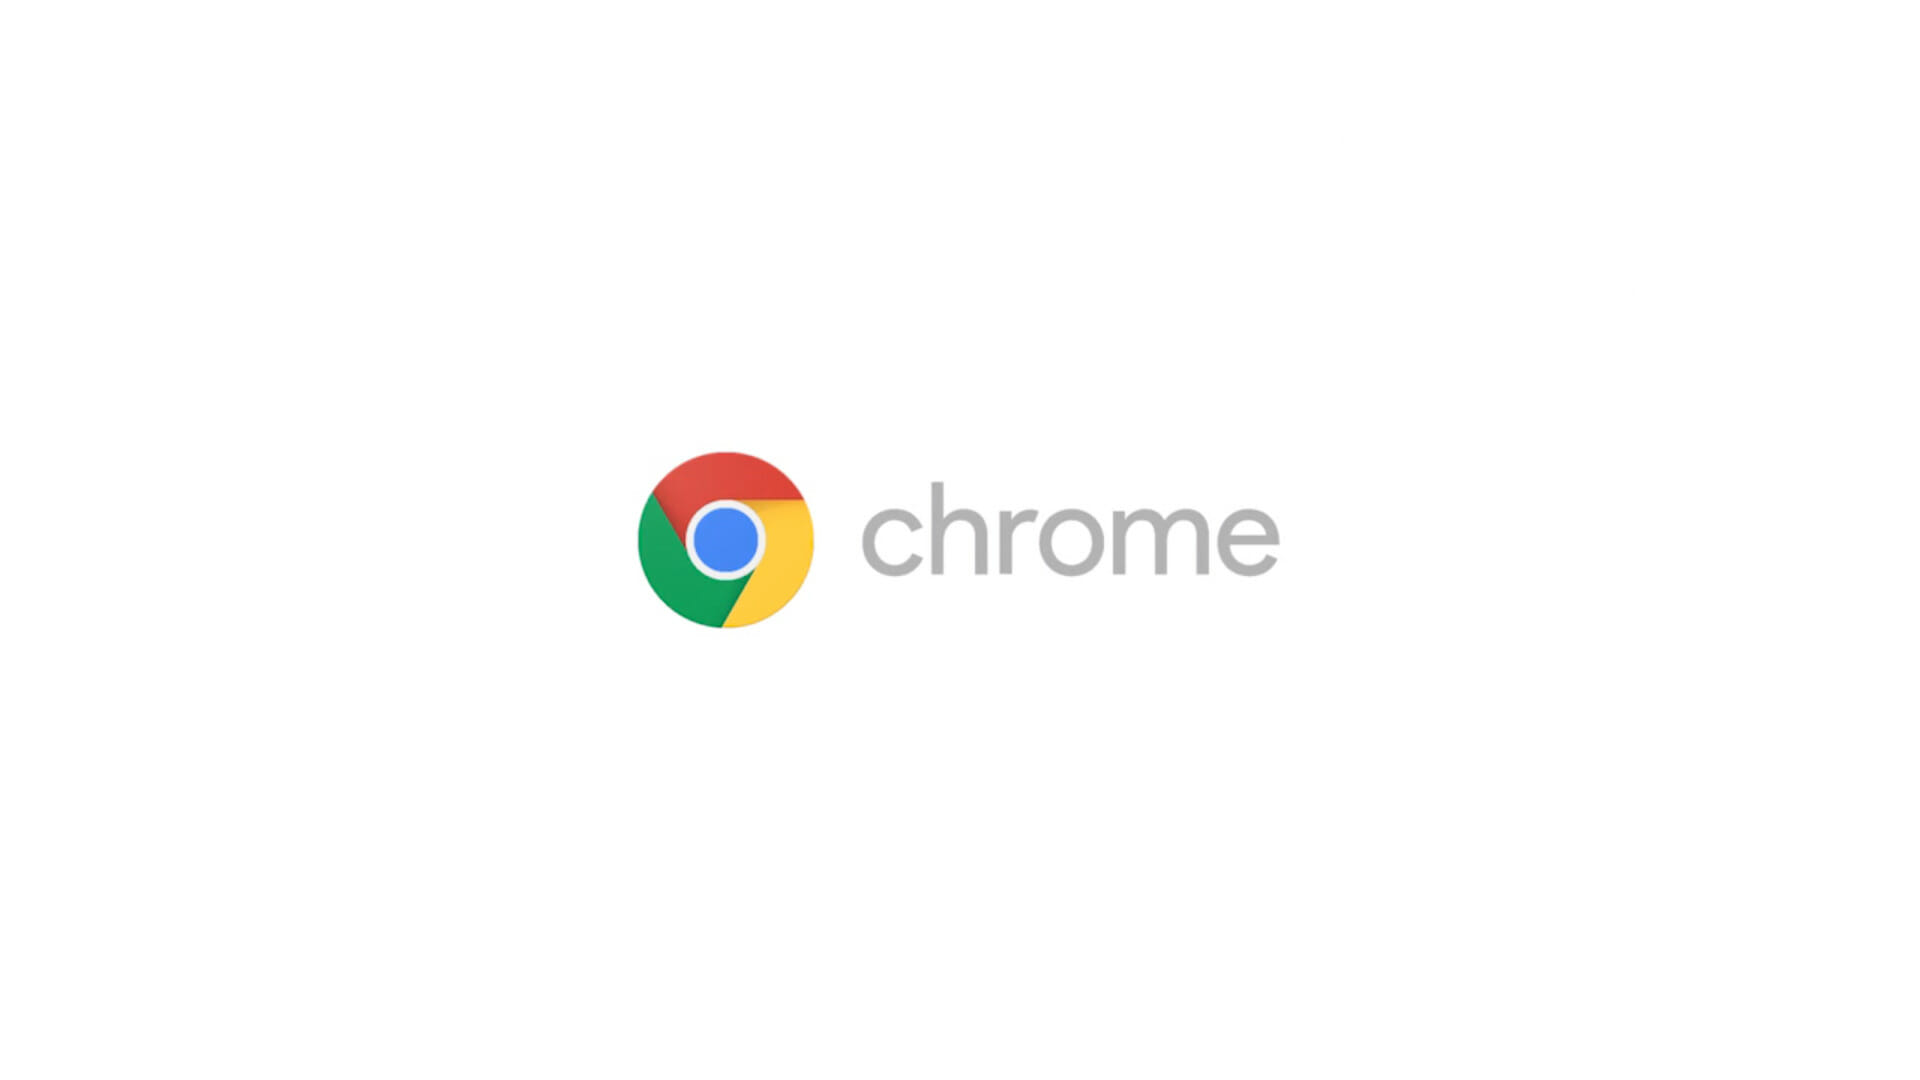 produccion de video google chrome